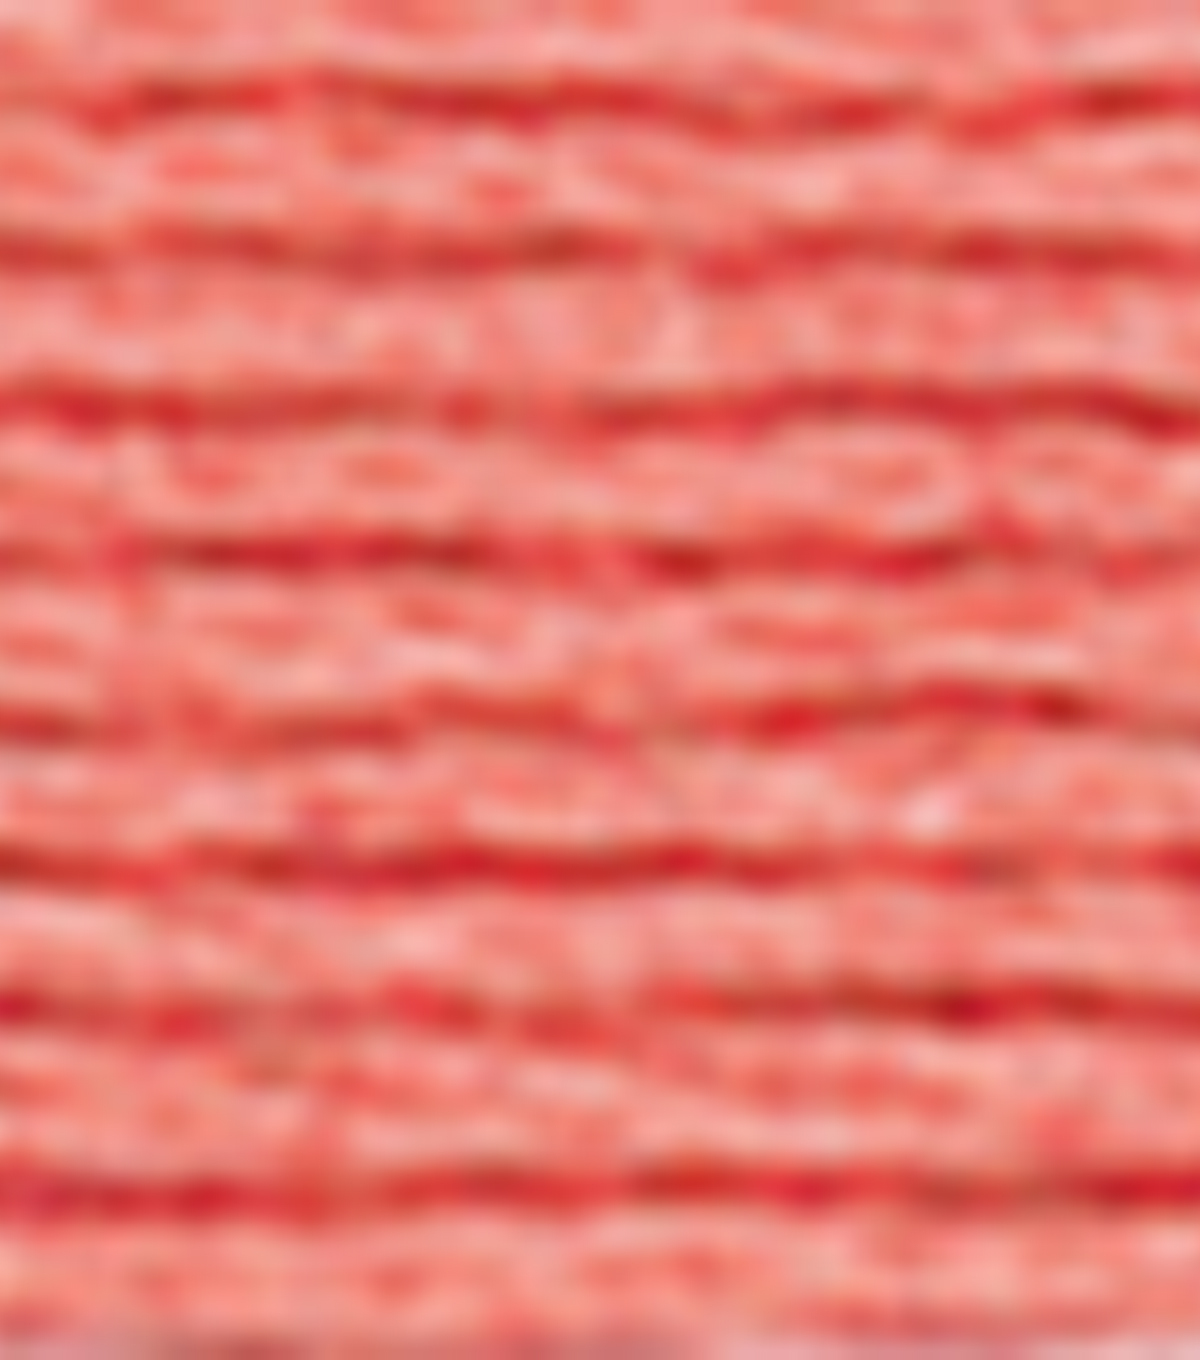 DMC Pearl Cotton Thread 27 Yds Size 5, Light Coral